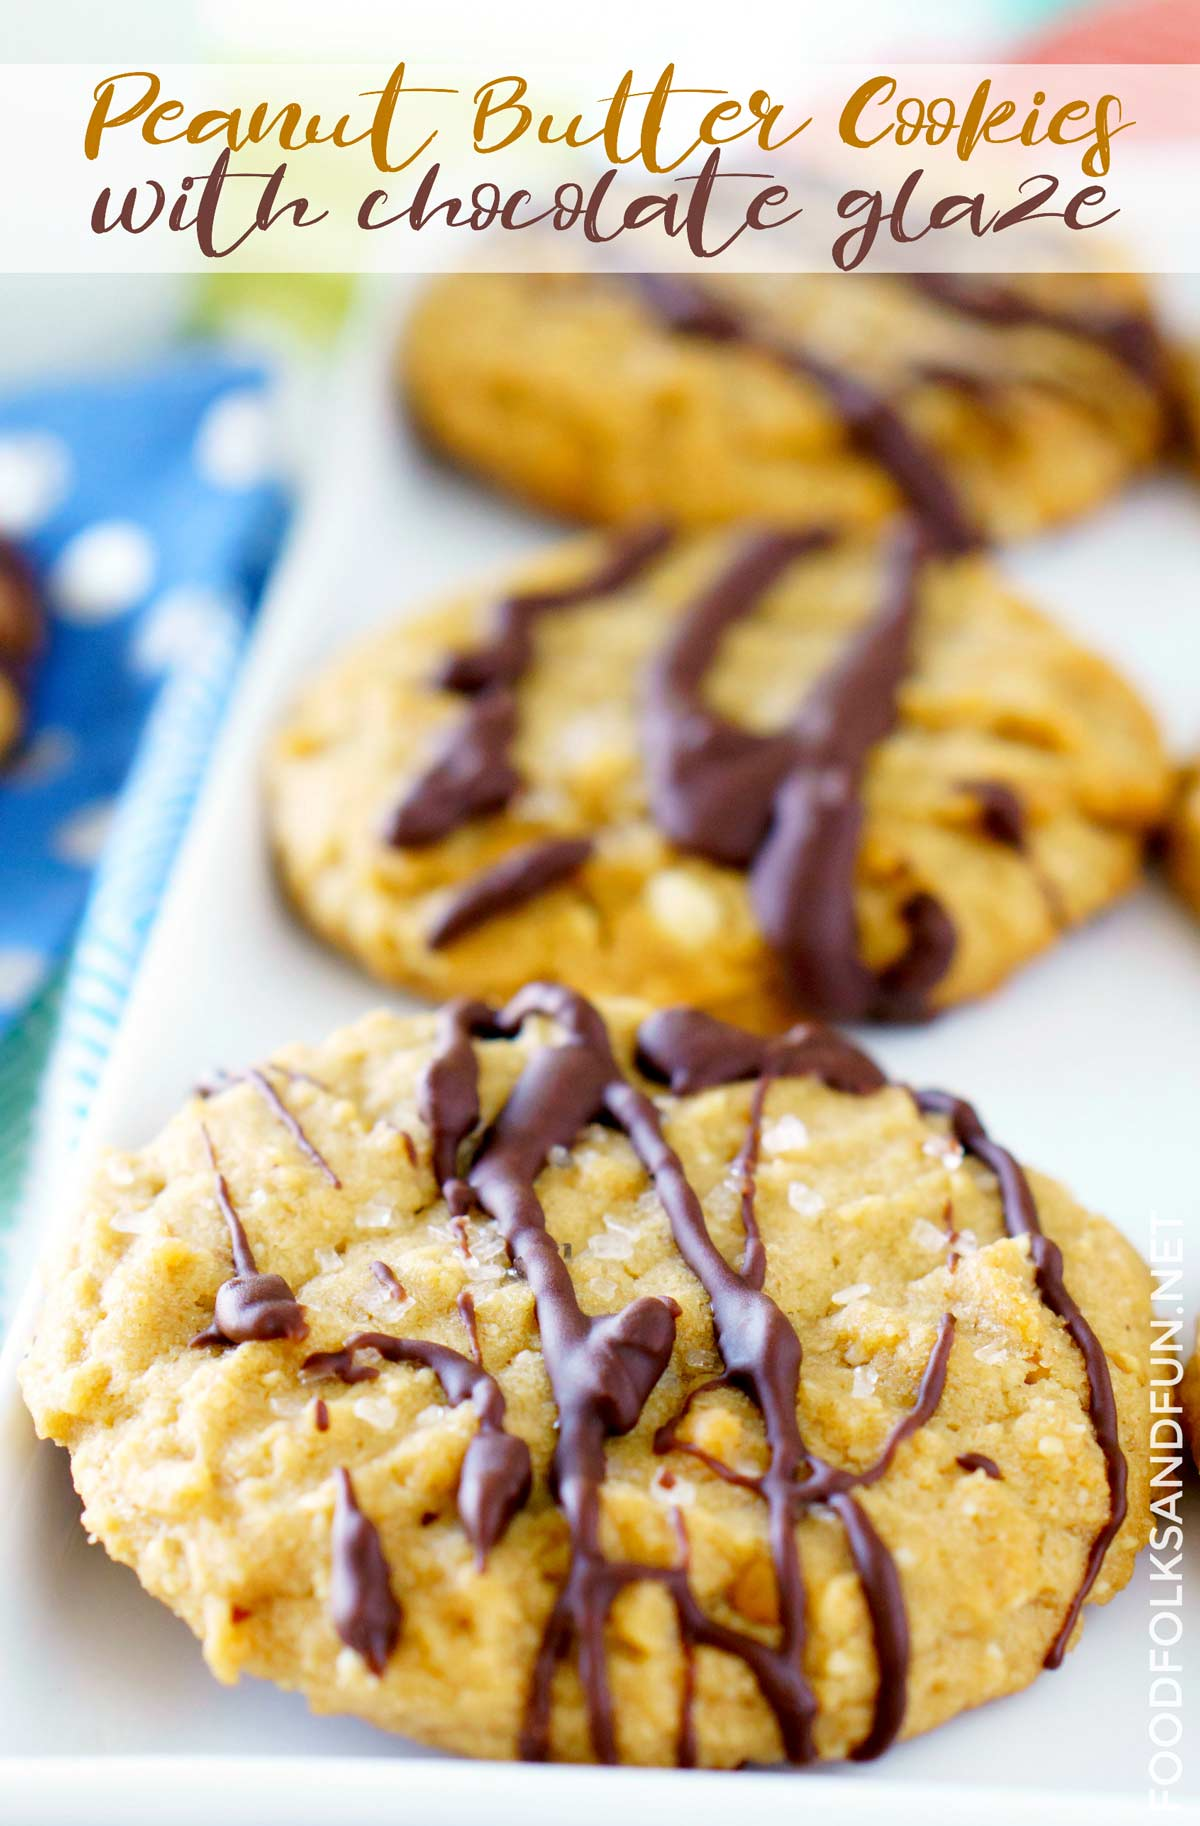 Soft, super-nutty Peanut Butter Cookies with Chocolate Drizzle